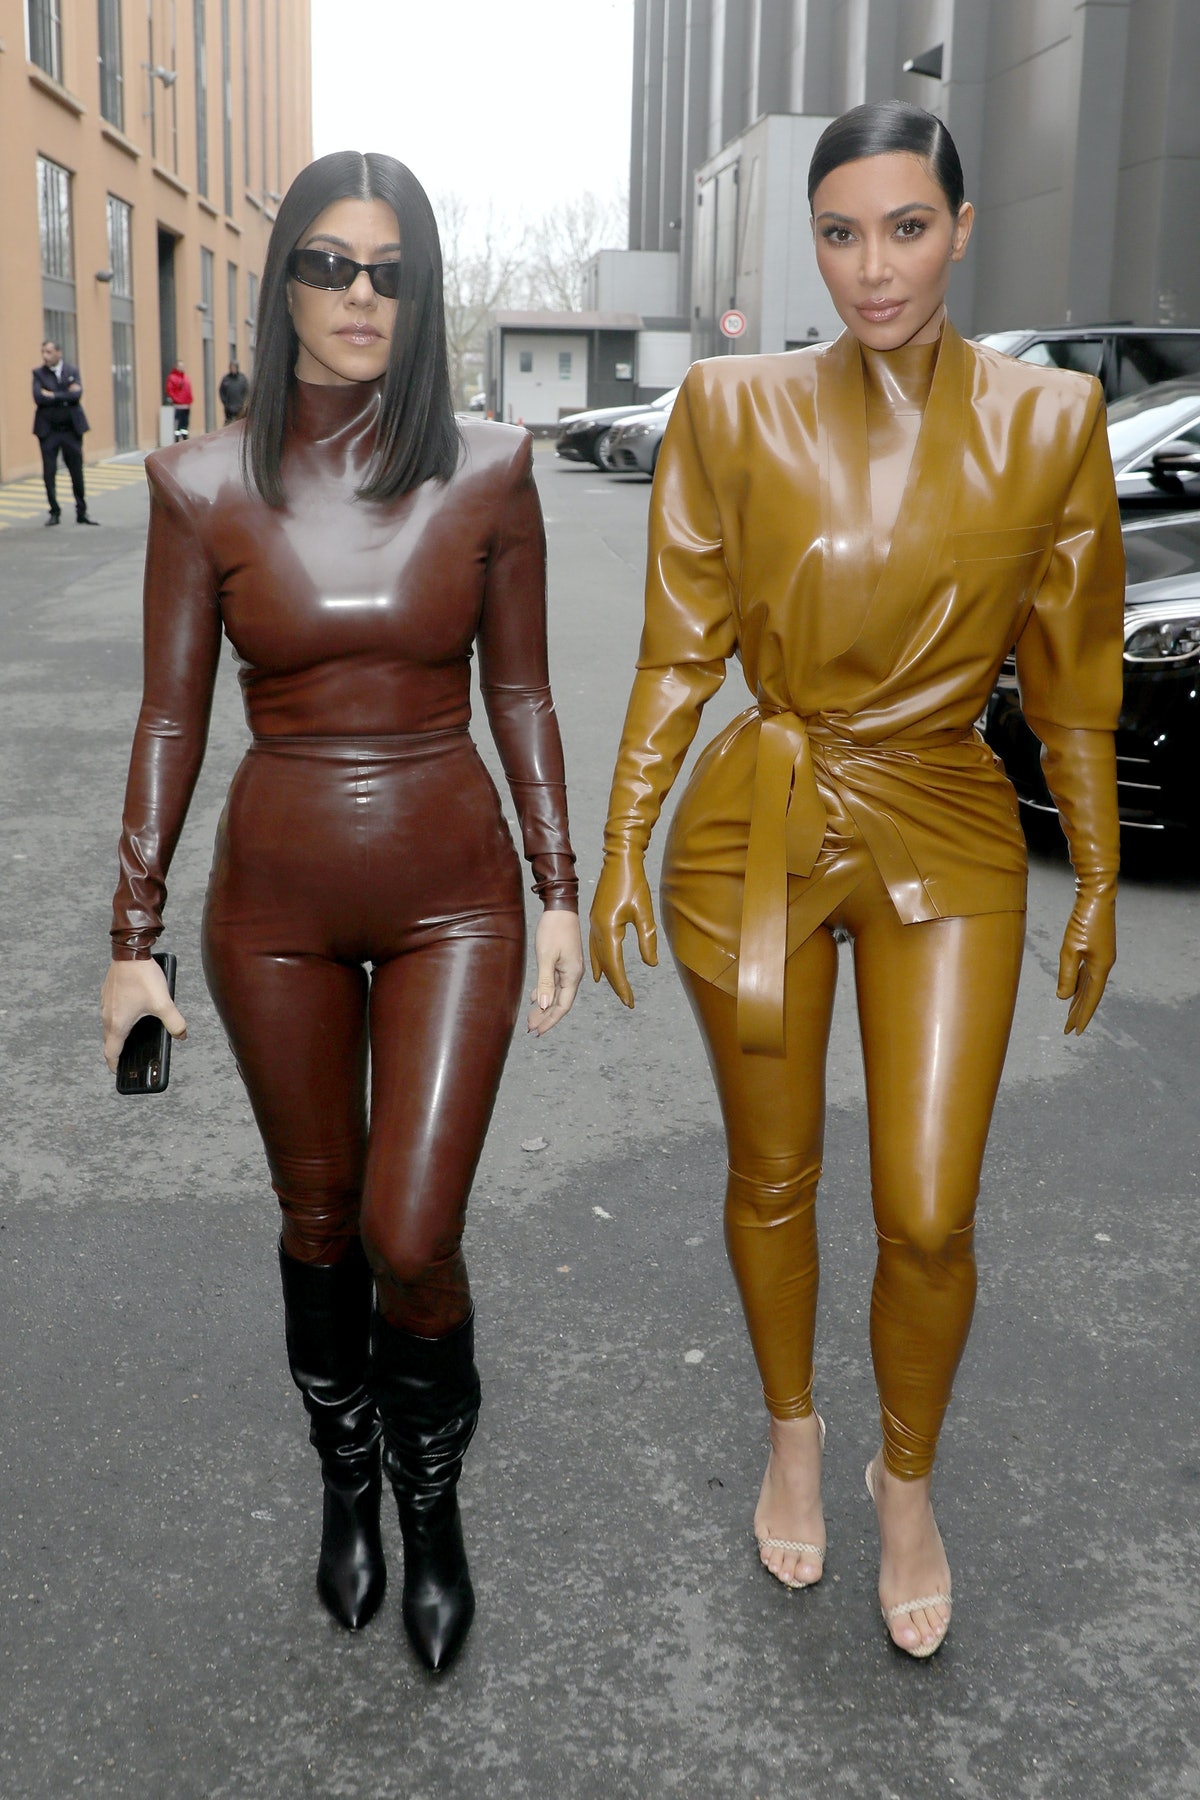 PARIS, FRANCE - MARCH 01: (EDITORIAL USE ONLY) Kourtney and Kim Kardashian attend the Balenciaga show as part of the Paris Fashion Week Womenswear Fall/Winter 2020/2021 on March 01, 2020 in Paris, France. (Photo by Pierre Suu/Getty Images)